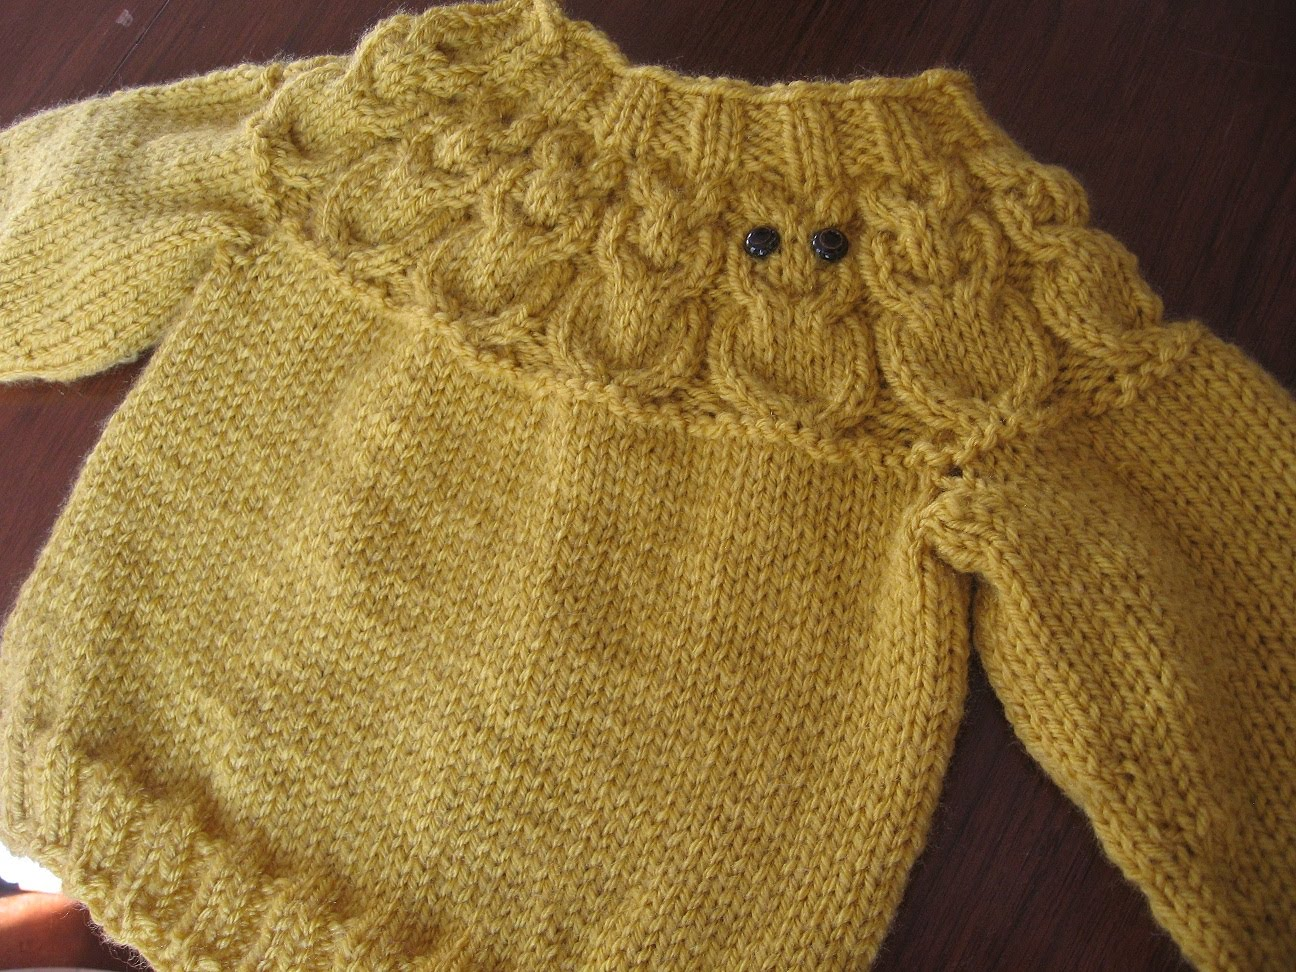 Knitting Pattern For Owl Jumper : knitknit: norwegian knits